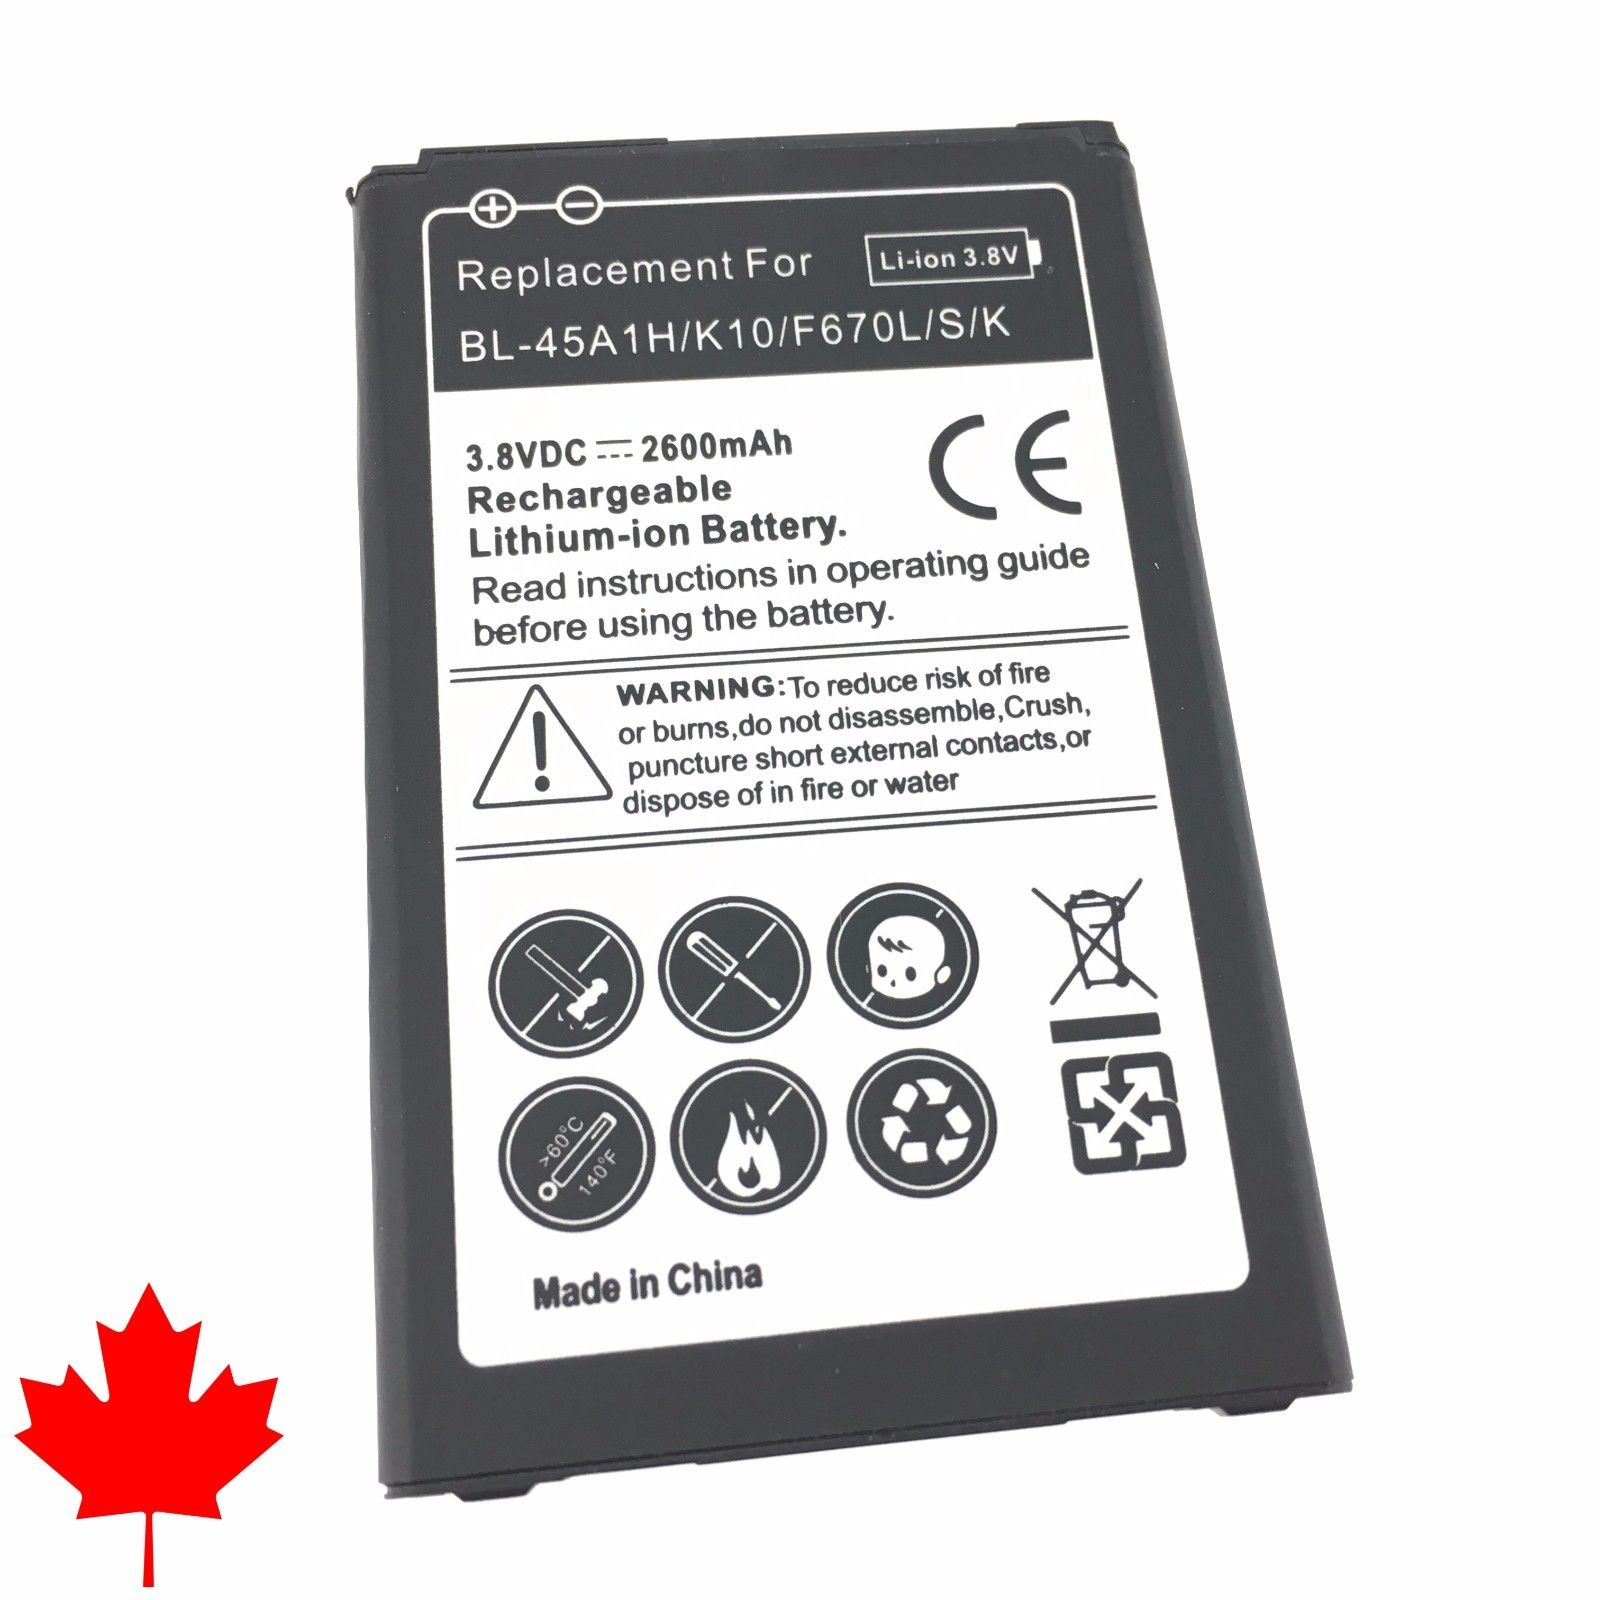 LIVEDITOR NEW LG K10 Replacement Battery F670L BL-45A1H (2016) 2600mAh - image 2 of 2